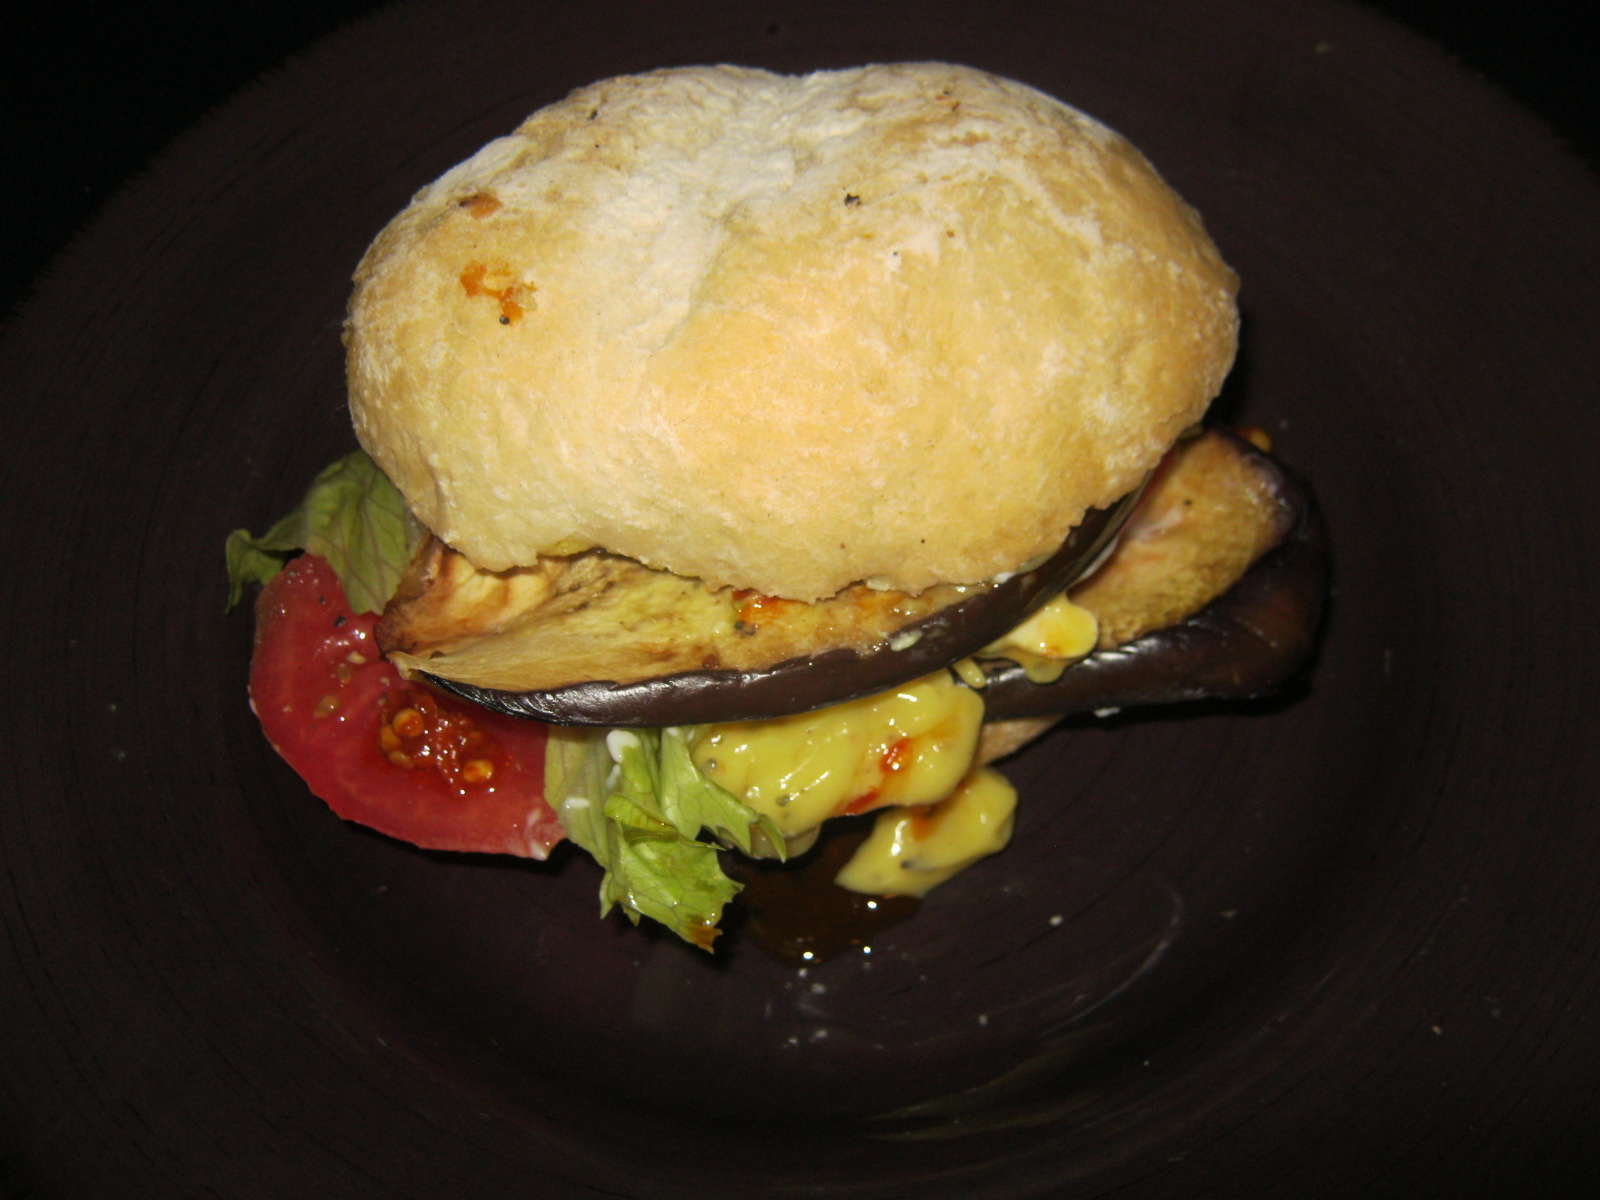 Brinjal Burger with tomato lettuce and avocado